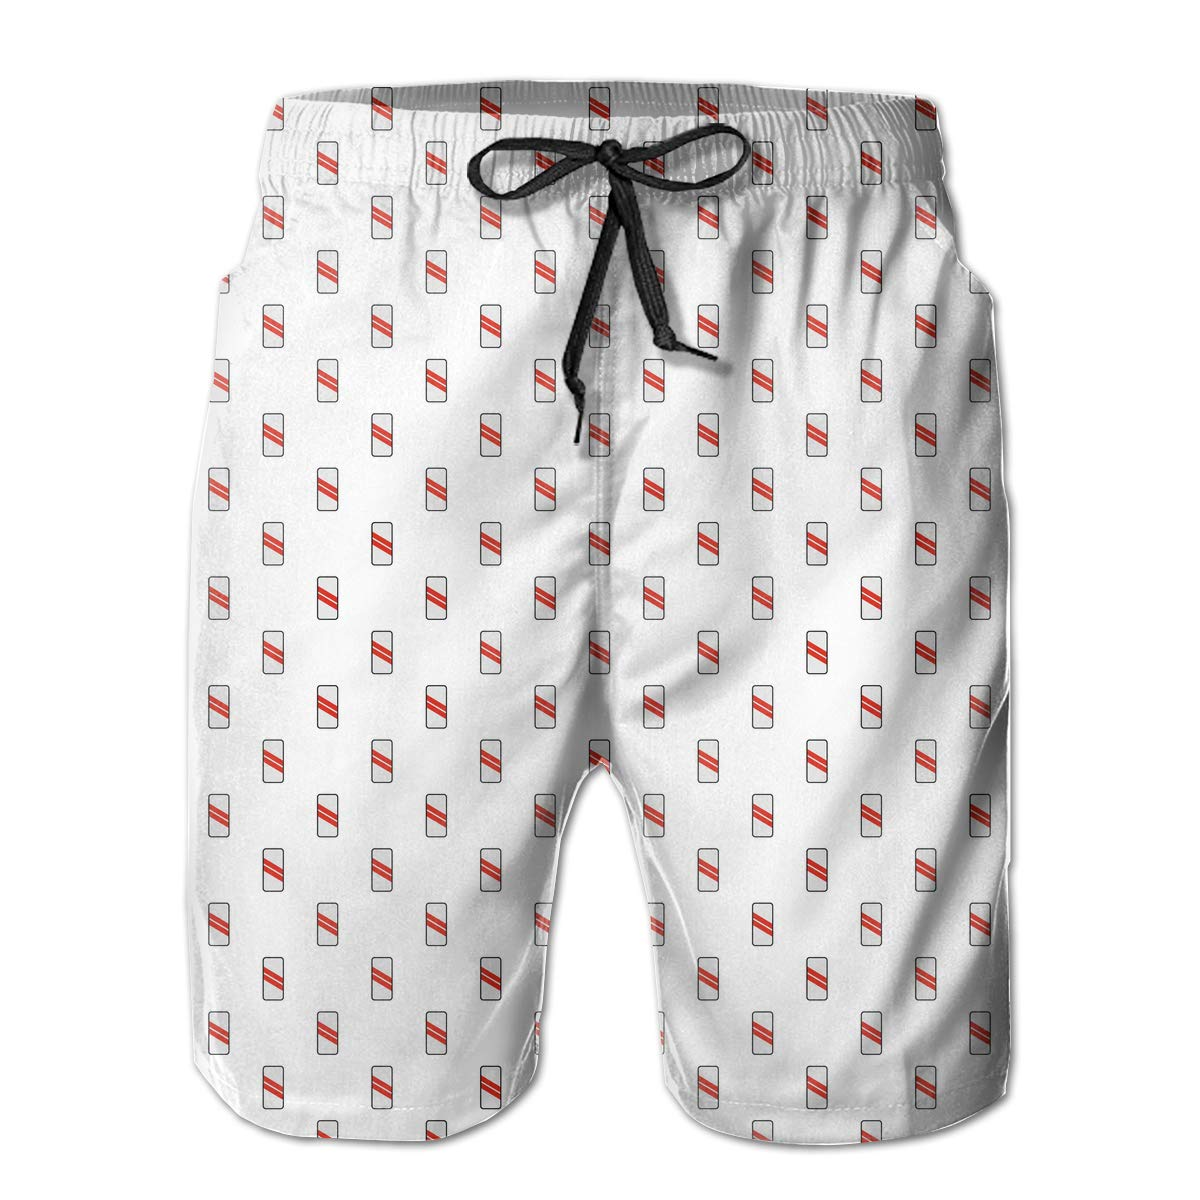 Xk7@KU Mens Casual Swim Trunks Polyester Approaching Railway Pattern Beachwear with Pockets